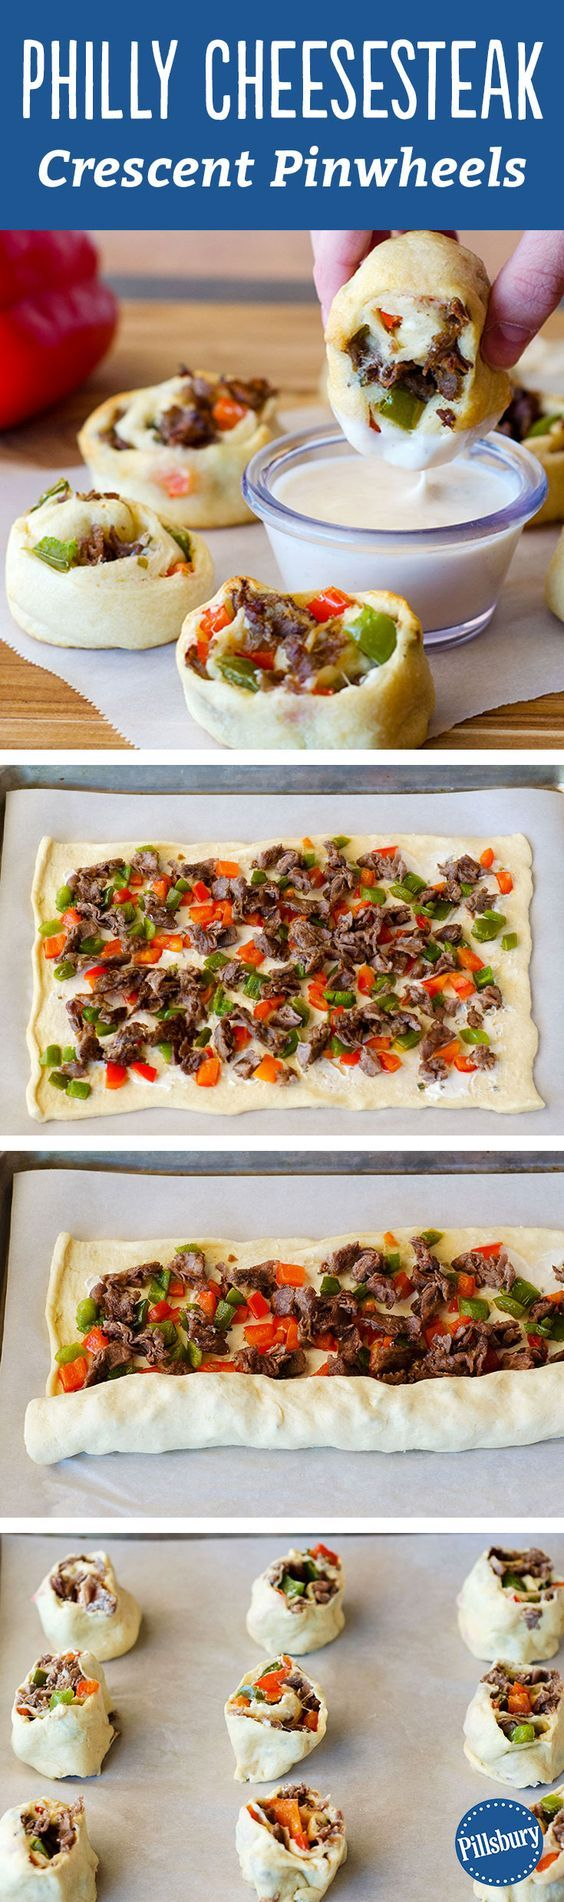 Our taste buds are buzzing after looking at these Philly Cheesesteak Crescent Pinwheels! The best part? They are incredibly easy-to-make (five-ingredient!) party appetizers and are sure to be a hit with your crowd. We suggest making them for a game day with alfredo sauce to dip.